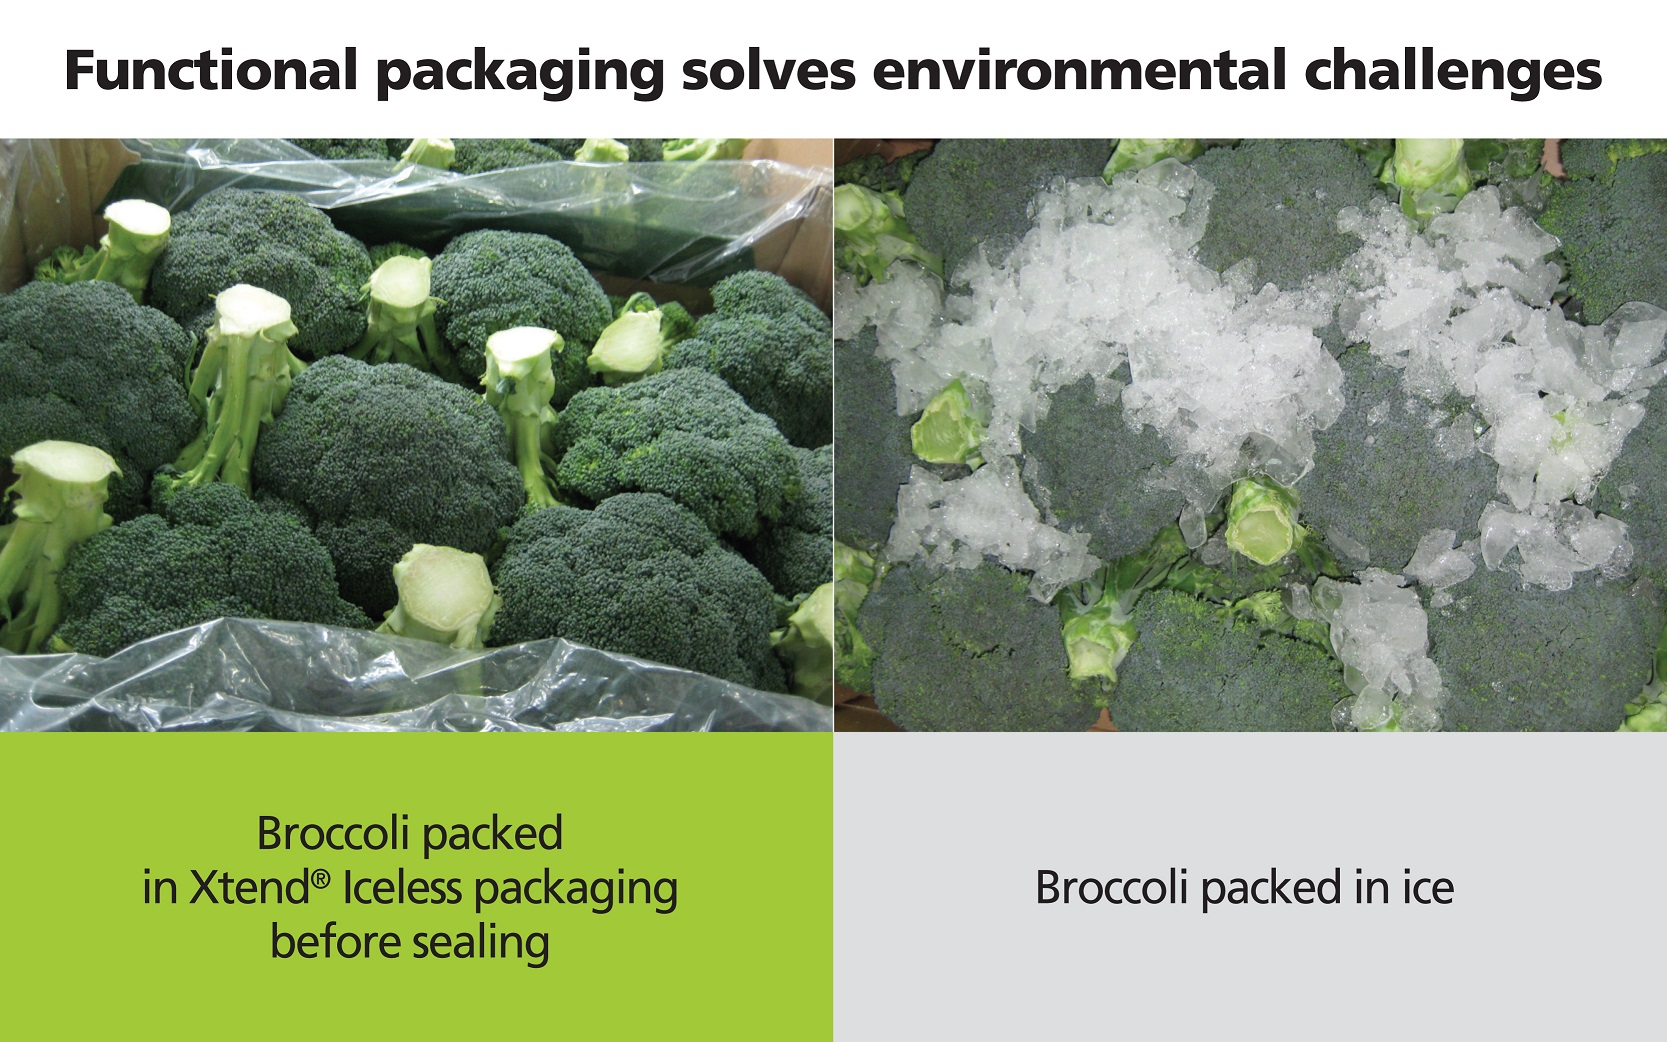 Smart packaging enhances food safety and security